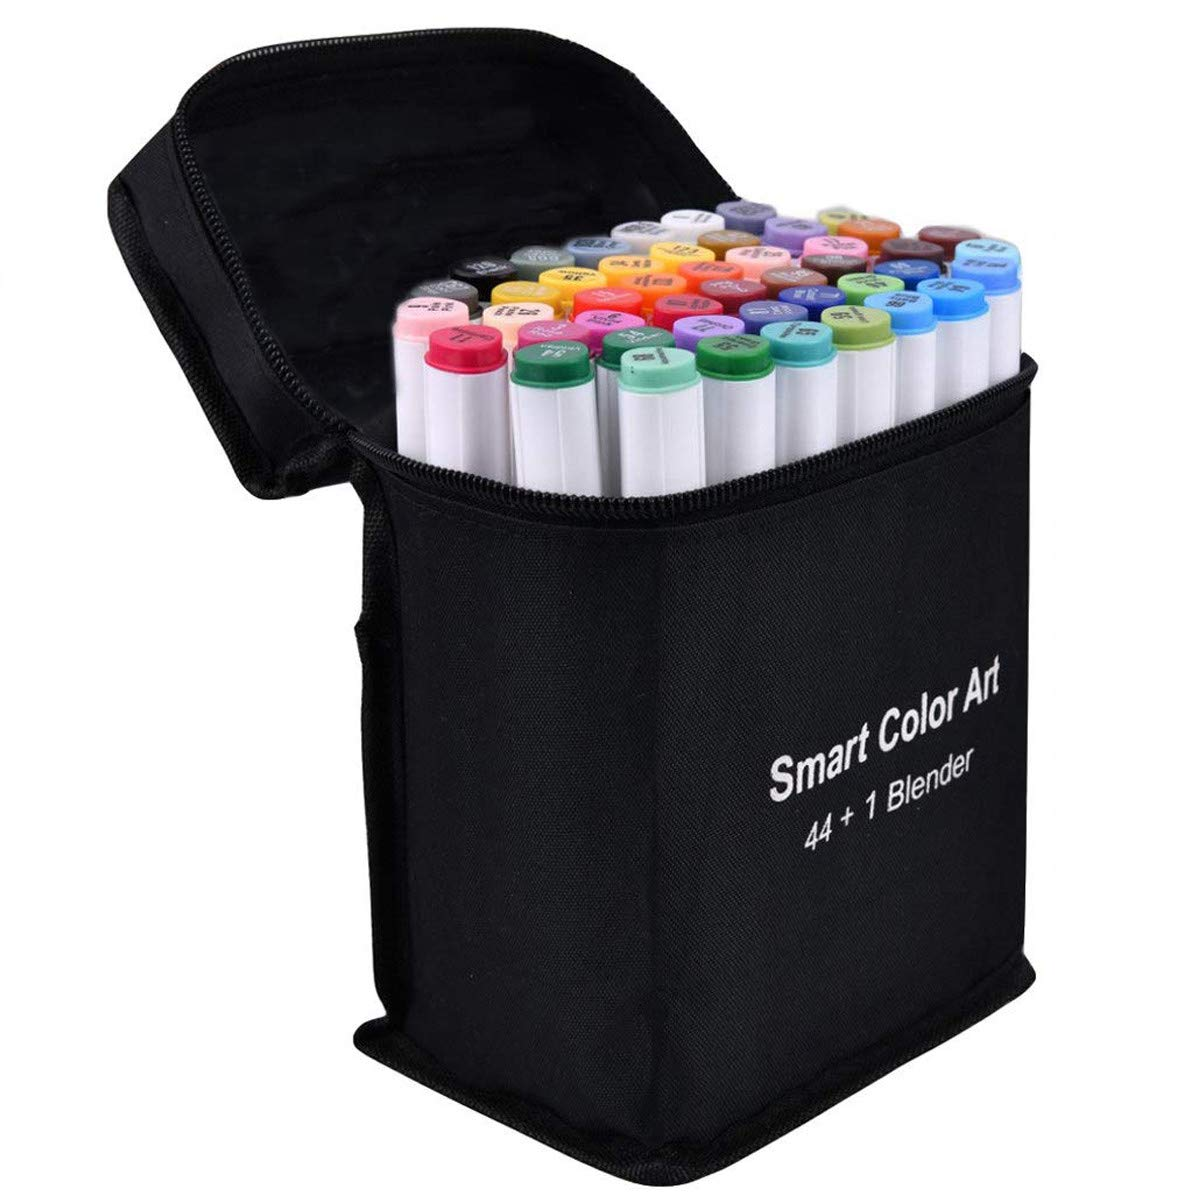 Art Markers, 44 Colors Markers and 1 Blender, 45 Pack Alcohol Based Dual Tip Permanent Markers with Case by Smart Color Art, Highlighters Excellent for Coloring, Marking, Drawing and Sketching by Smart Color Art